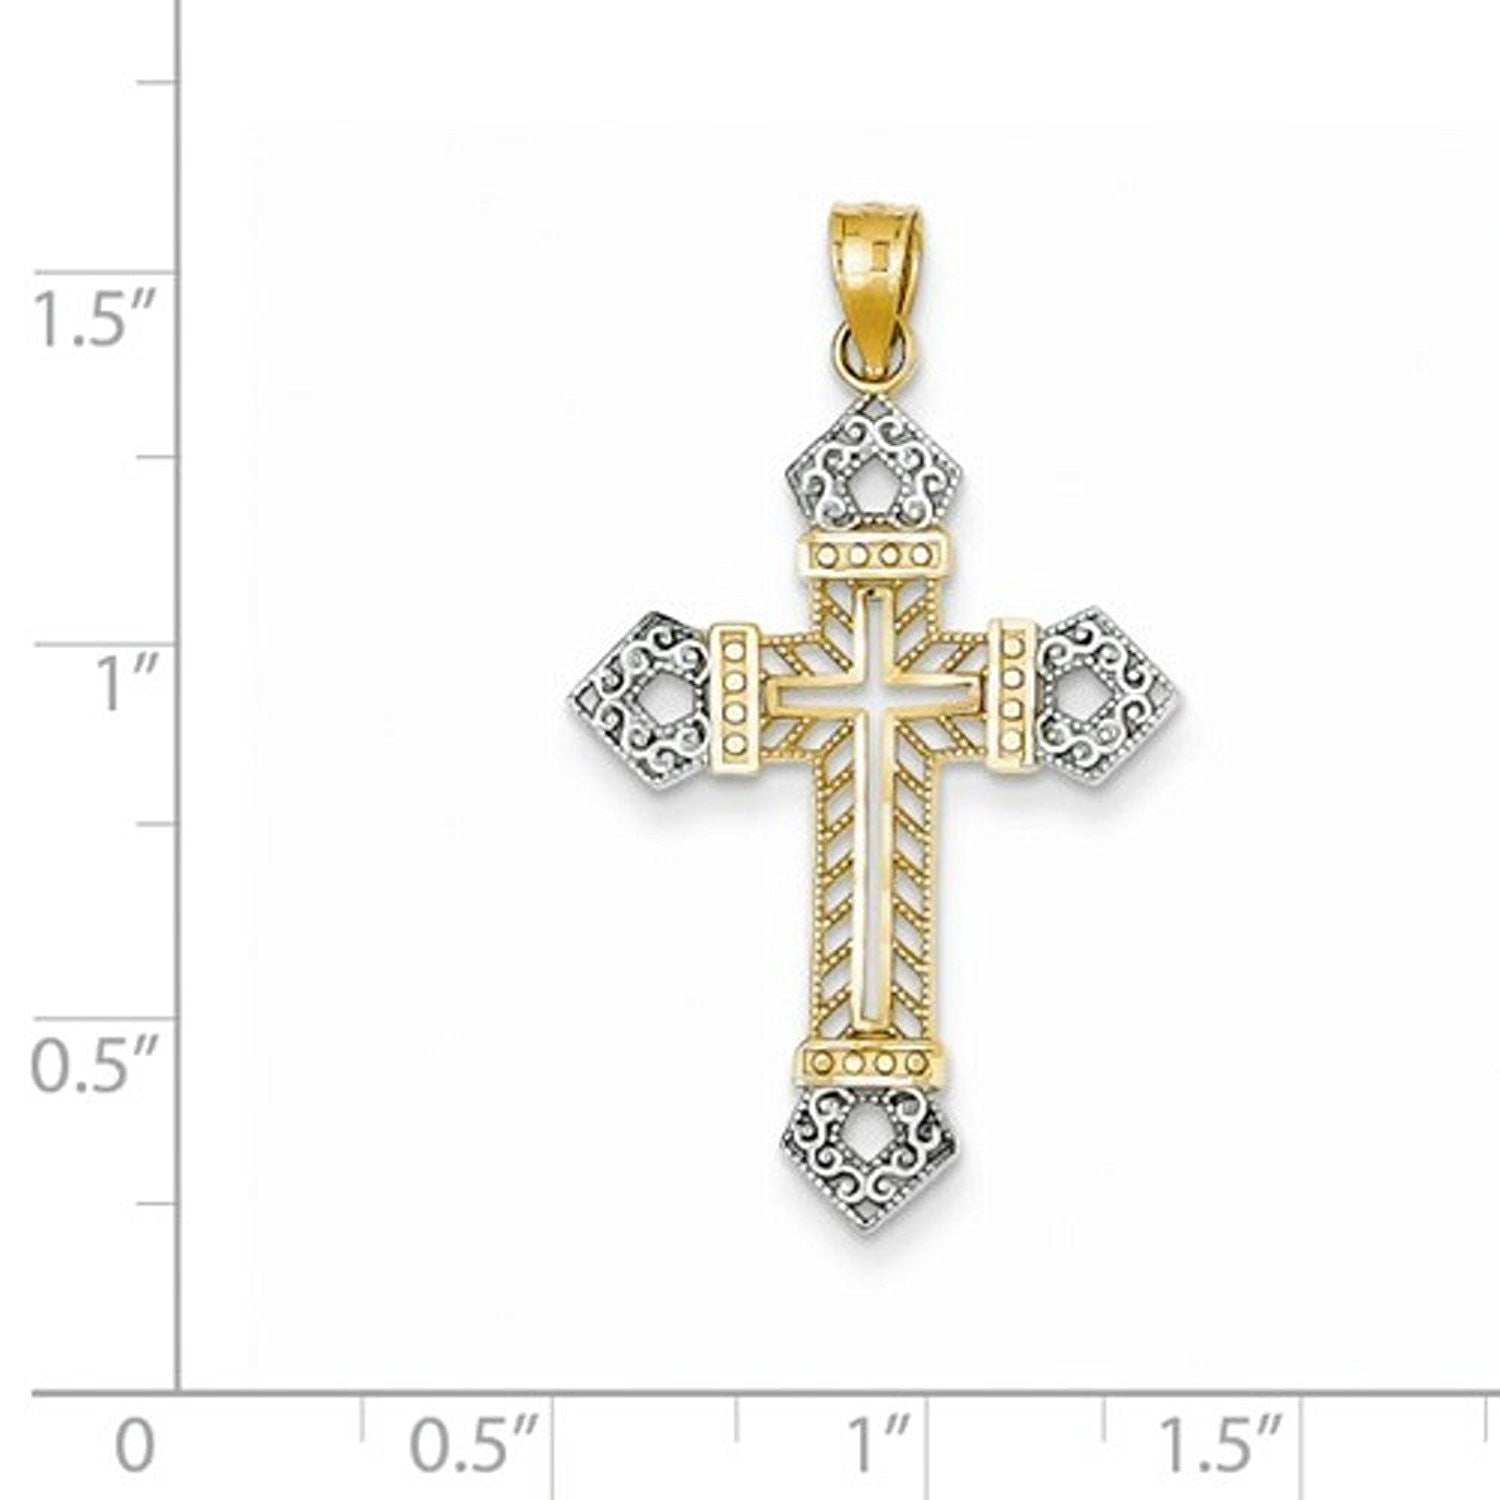 14k Yellow Gold and Rhodium Cross Pendant Charm